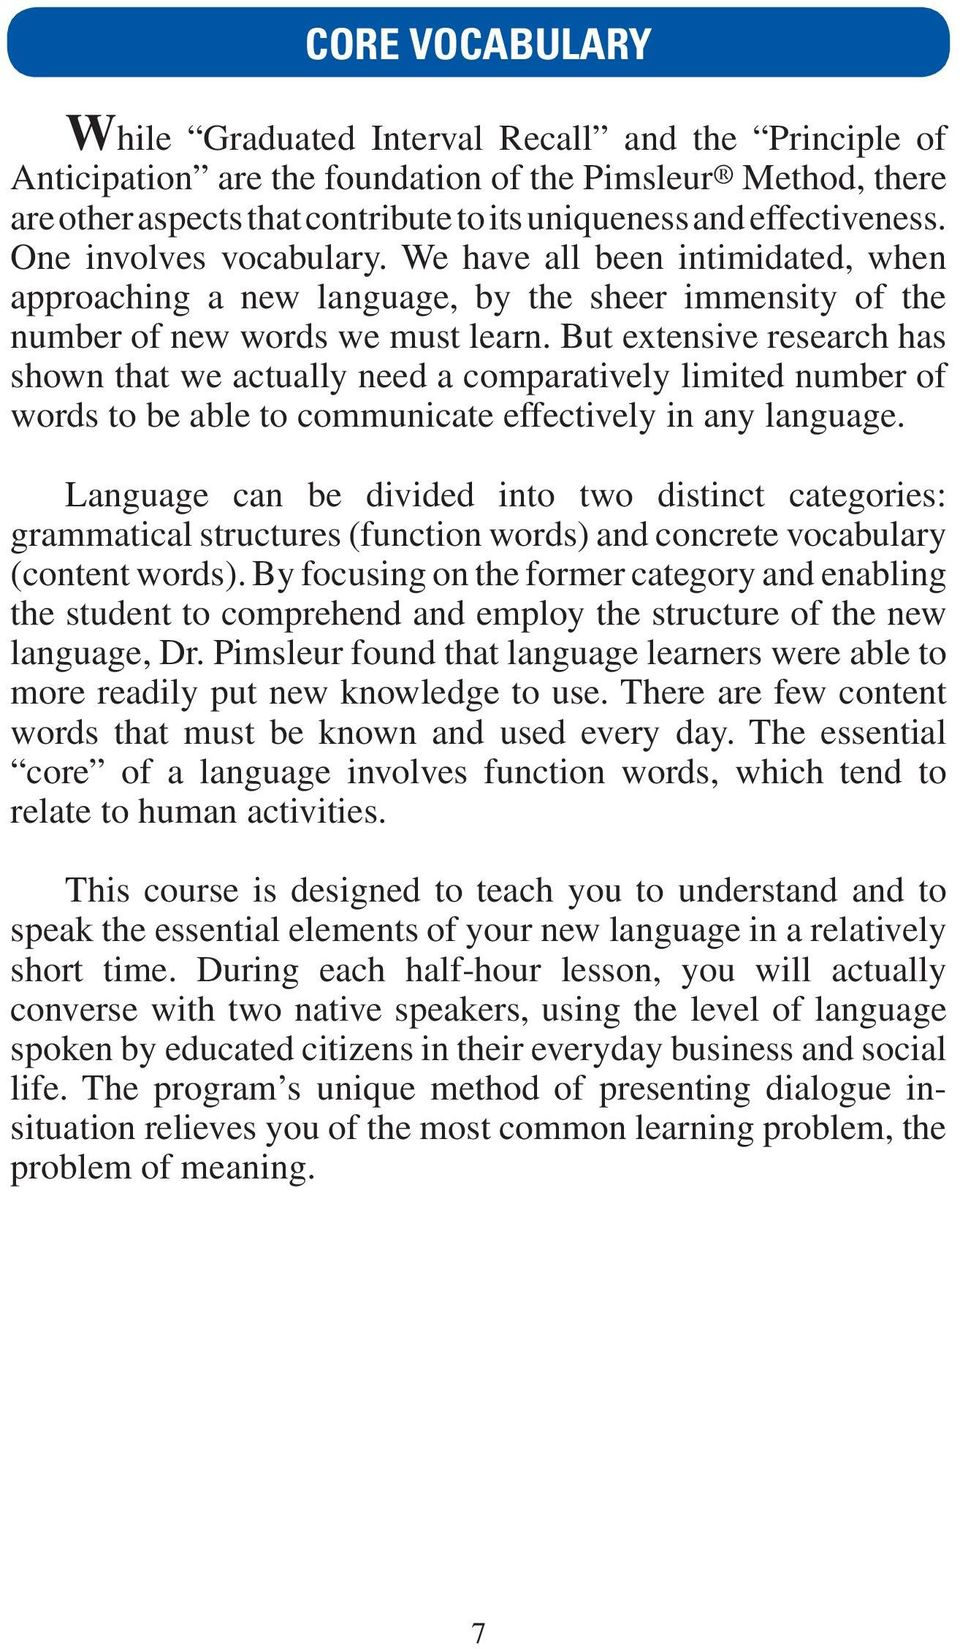 But extensive research has shown that we actually need a comparatively limited number of words to be able to communicate effectively in any language.